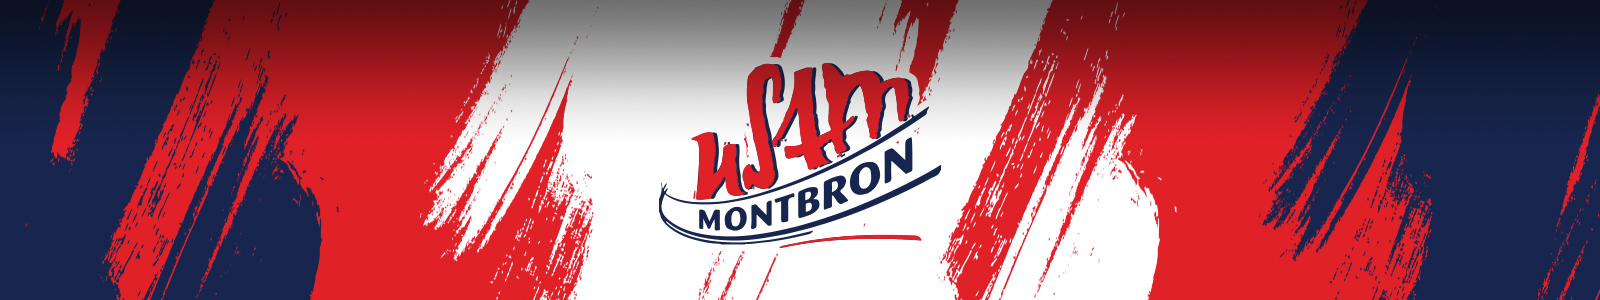 Union Sportive et Amicale Montbronnaise : site officiel du club de foot de MONTBRON - footeo